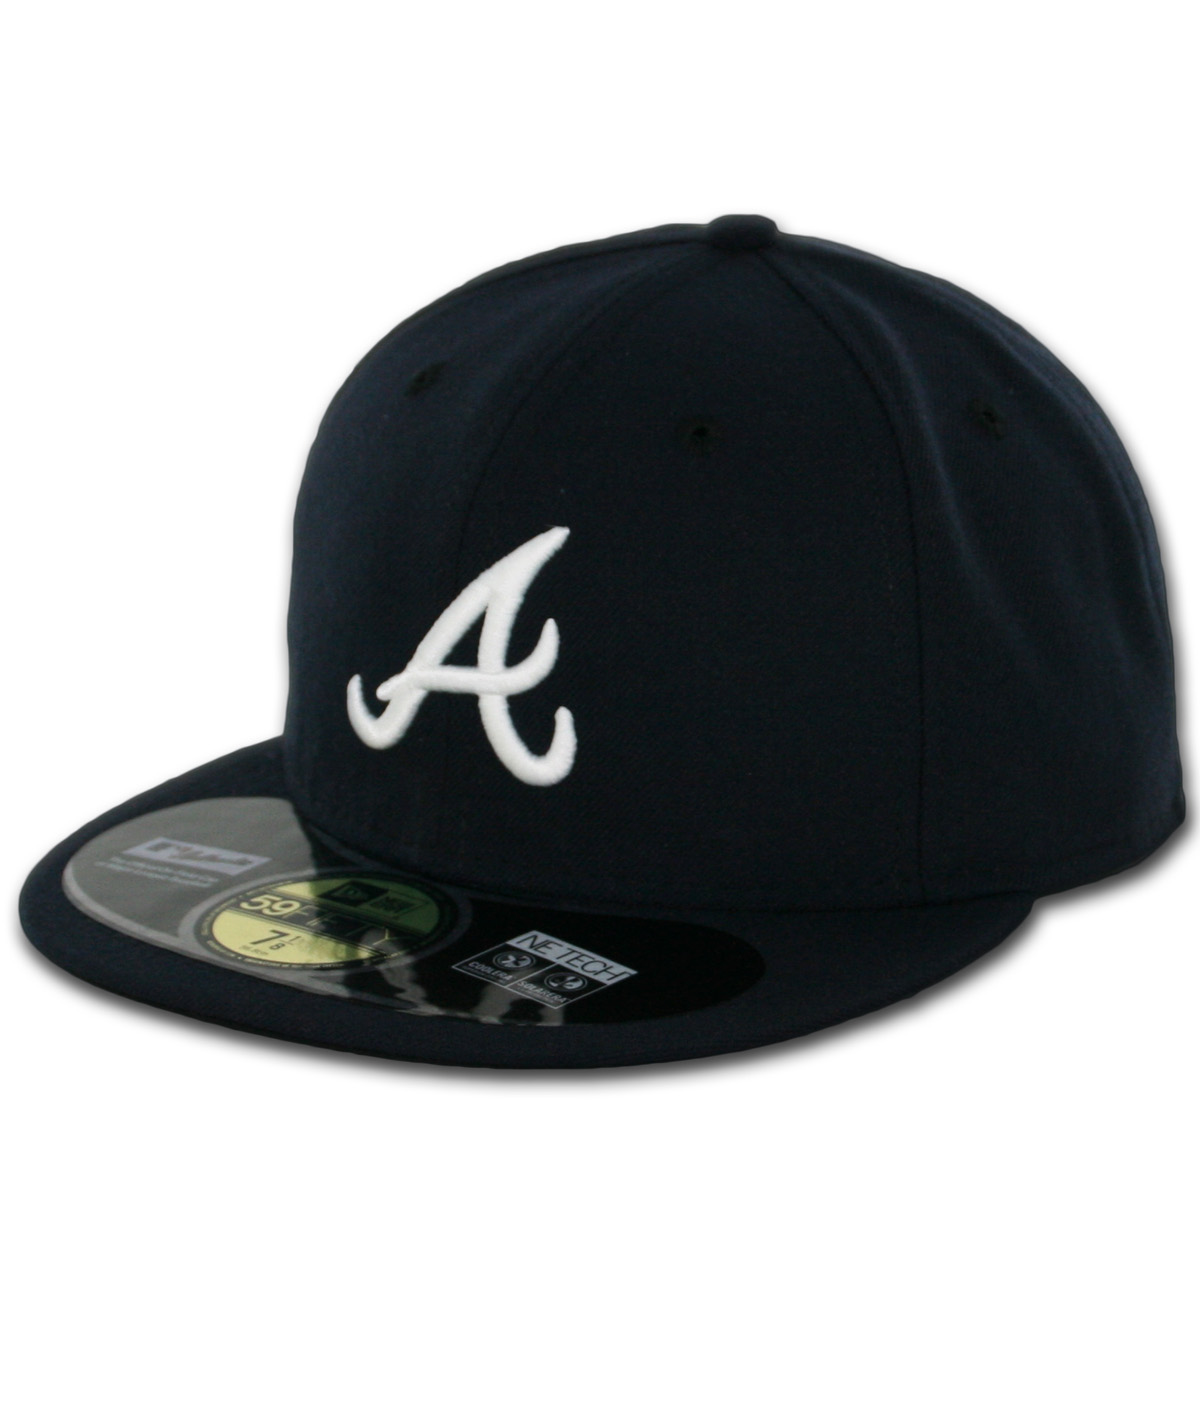 Braves Hats: New Era 5950 Atlanta Braves Road Authentic On Field Fitted